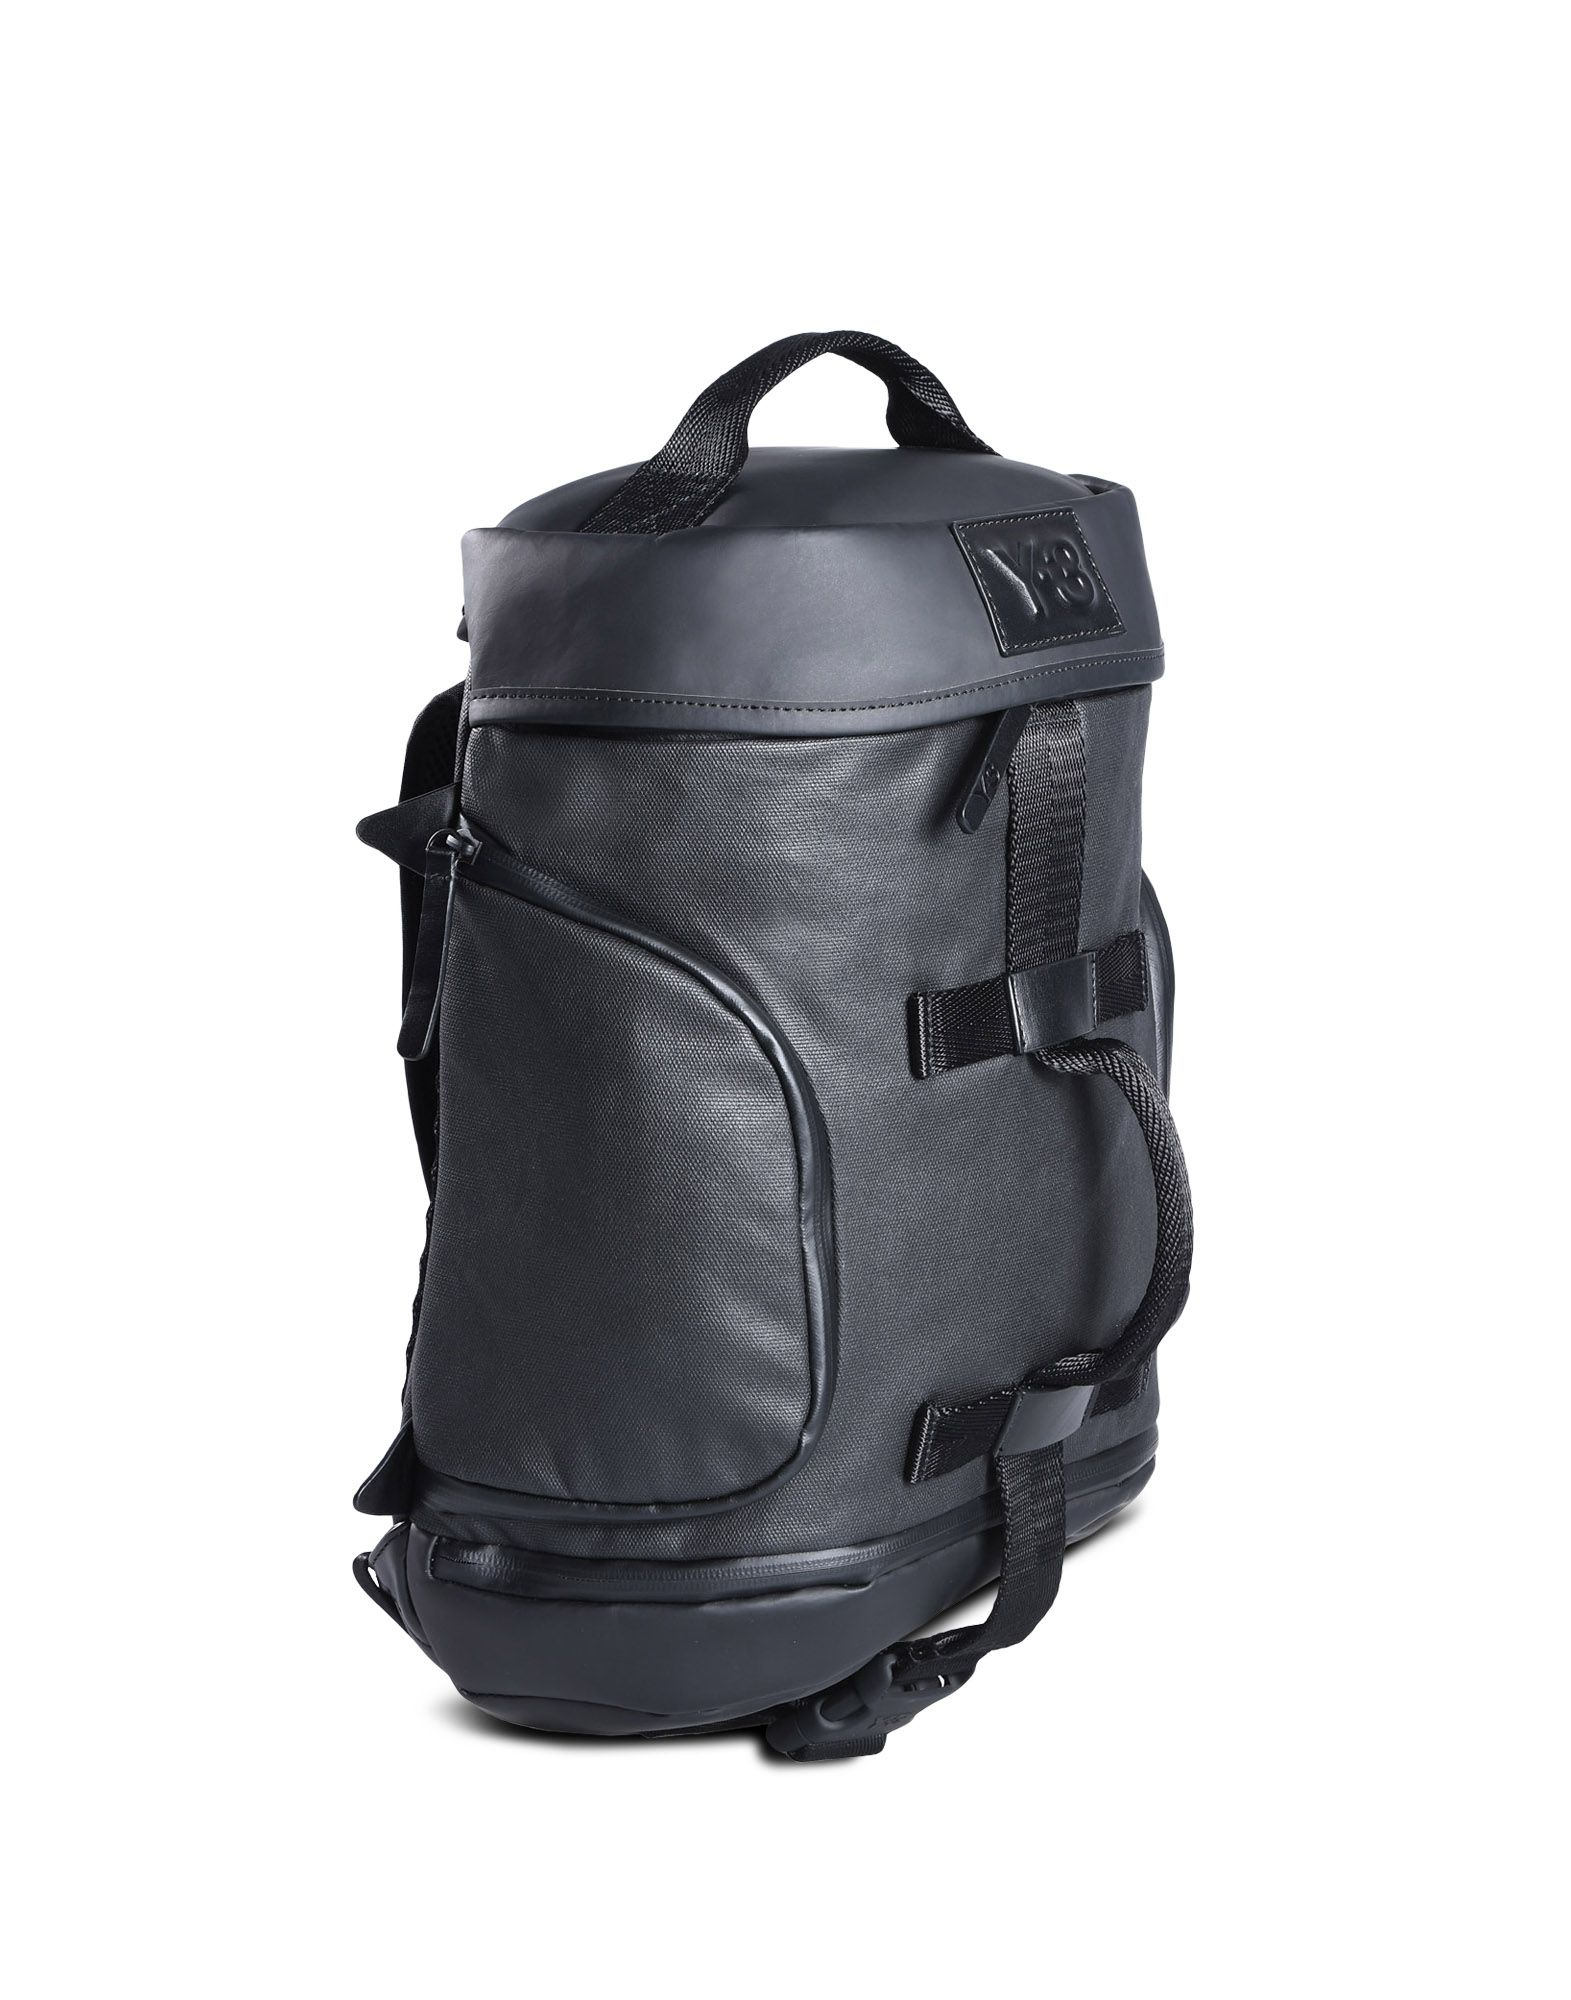 ... Y-3 Y-3 ICON BACKPACK SMALL Backpack E d ... fba7a50f2d9d2